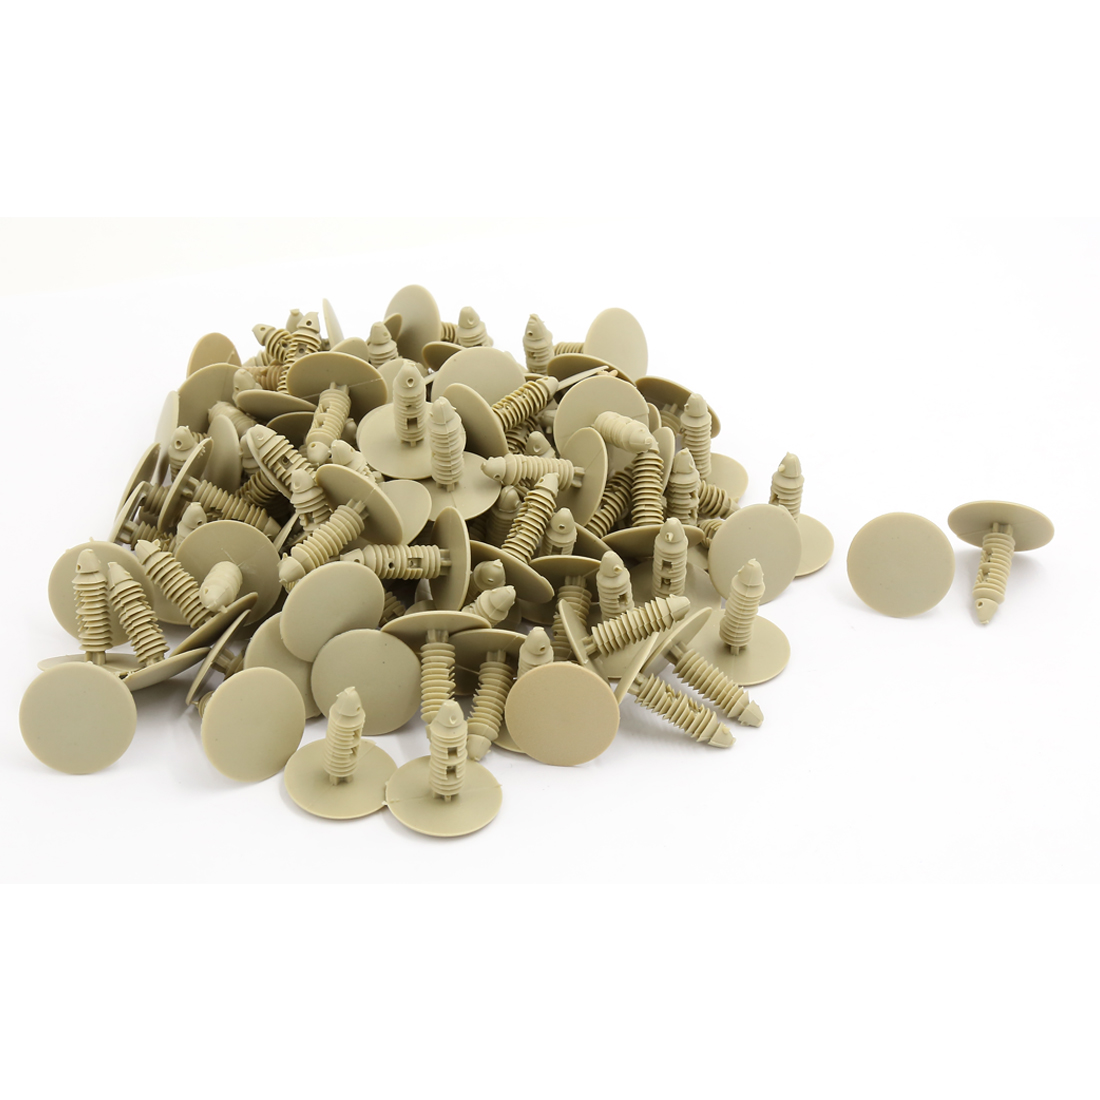 25mm Head 7.5mm Hole Khaki Plastic Splash Guard Moulding Rivet Clips 100 PCS